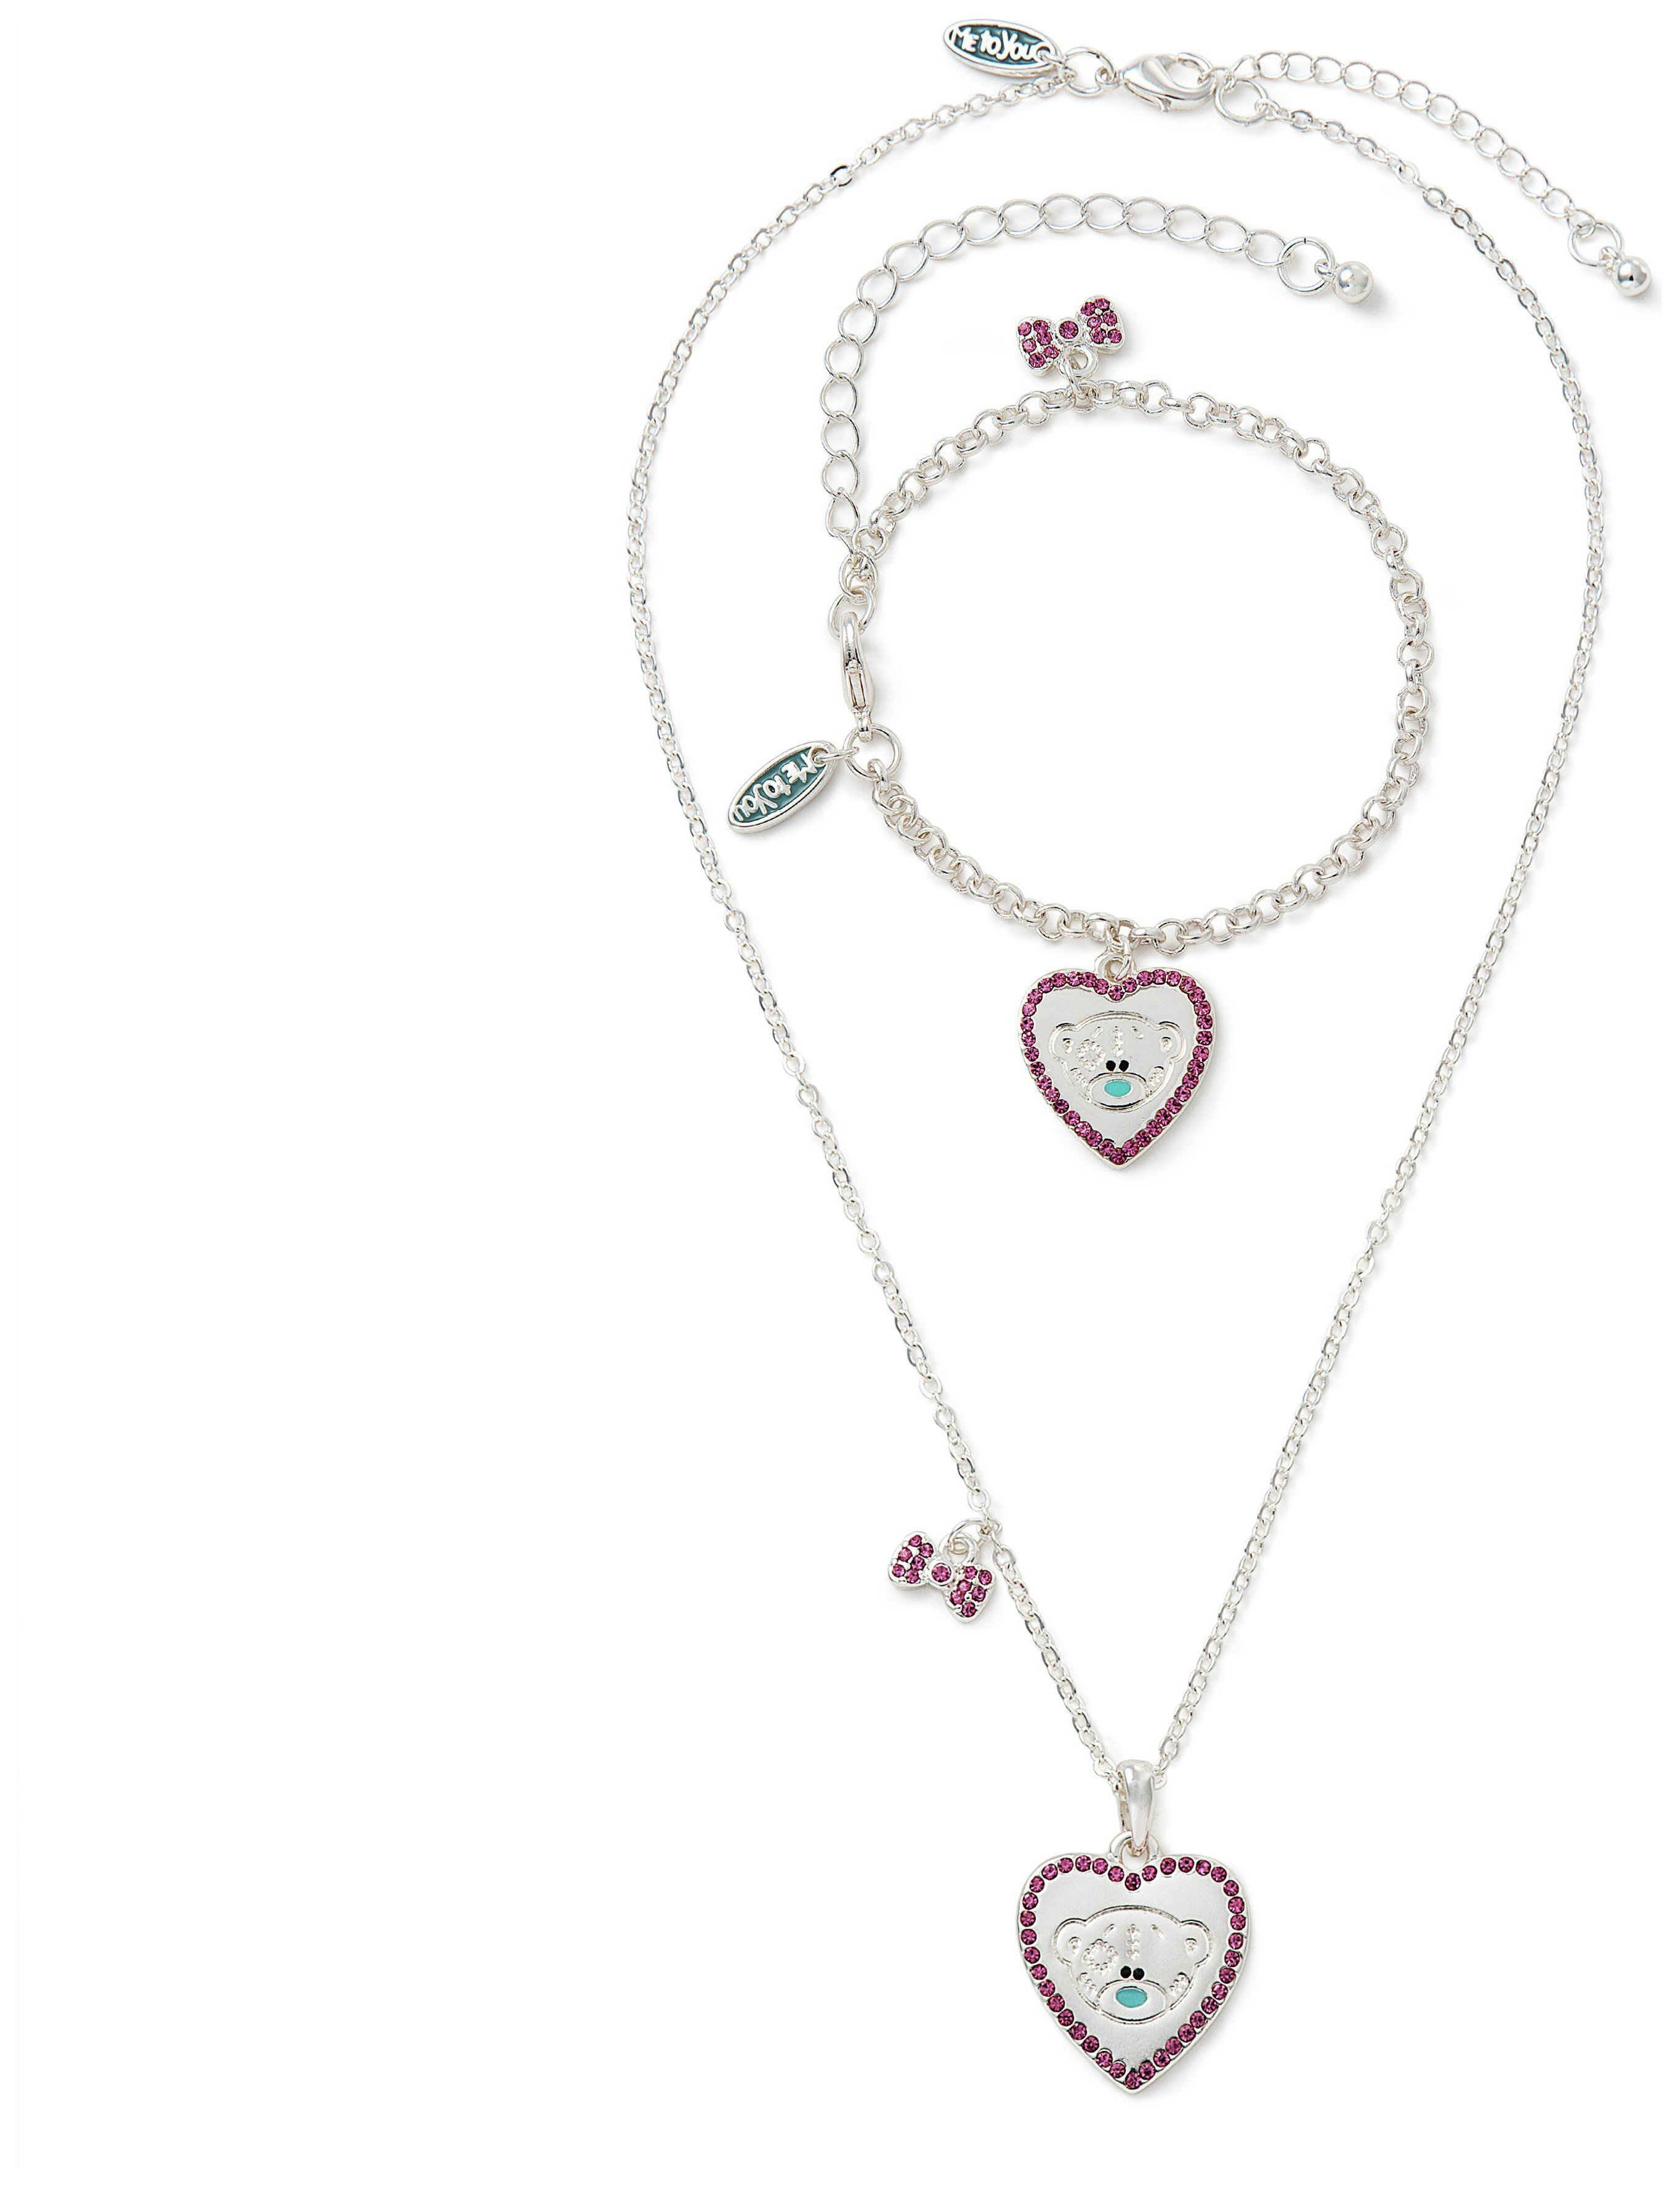 Image of Me to You Tatty Teddy Crystal Pendant and Bracelet Set